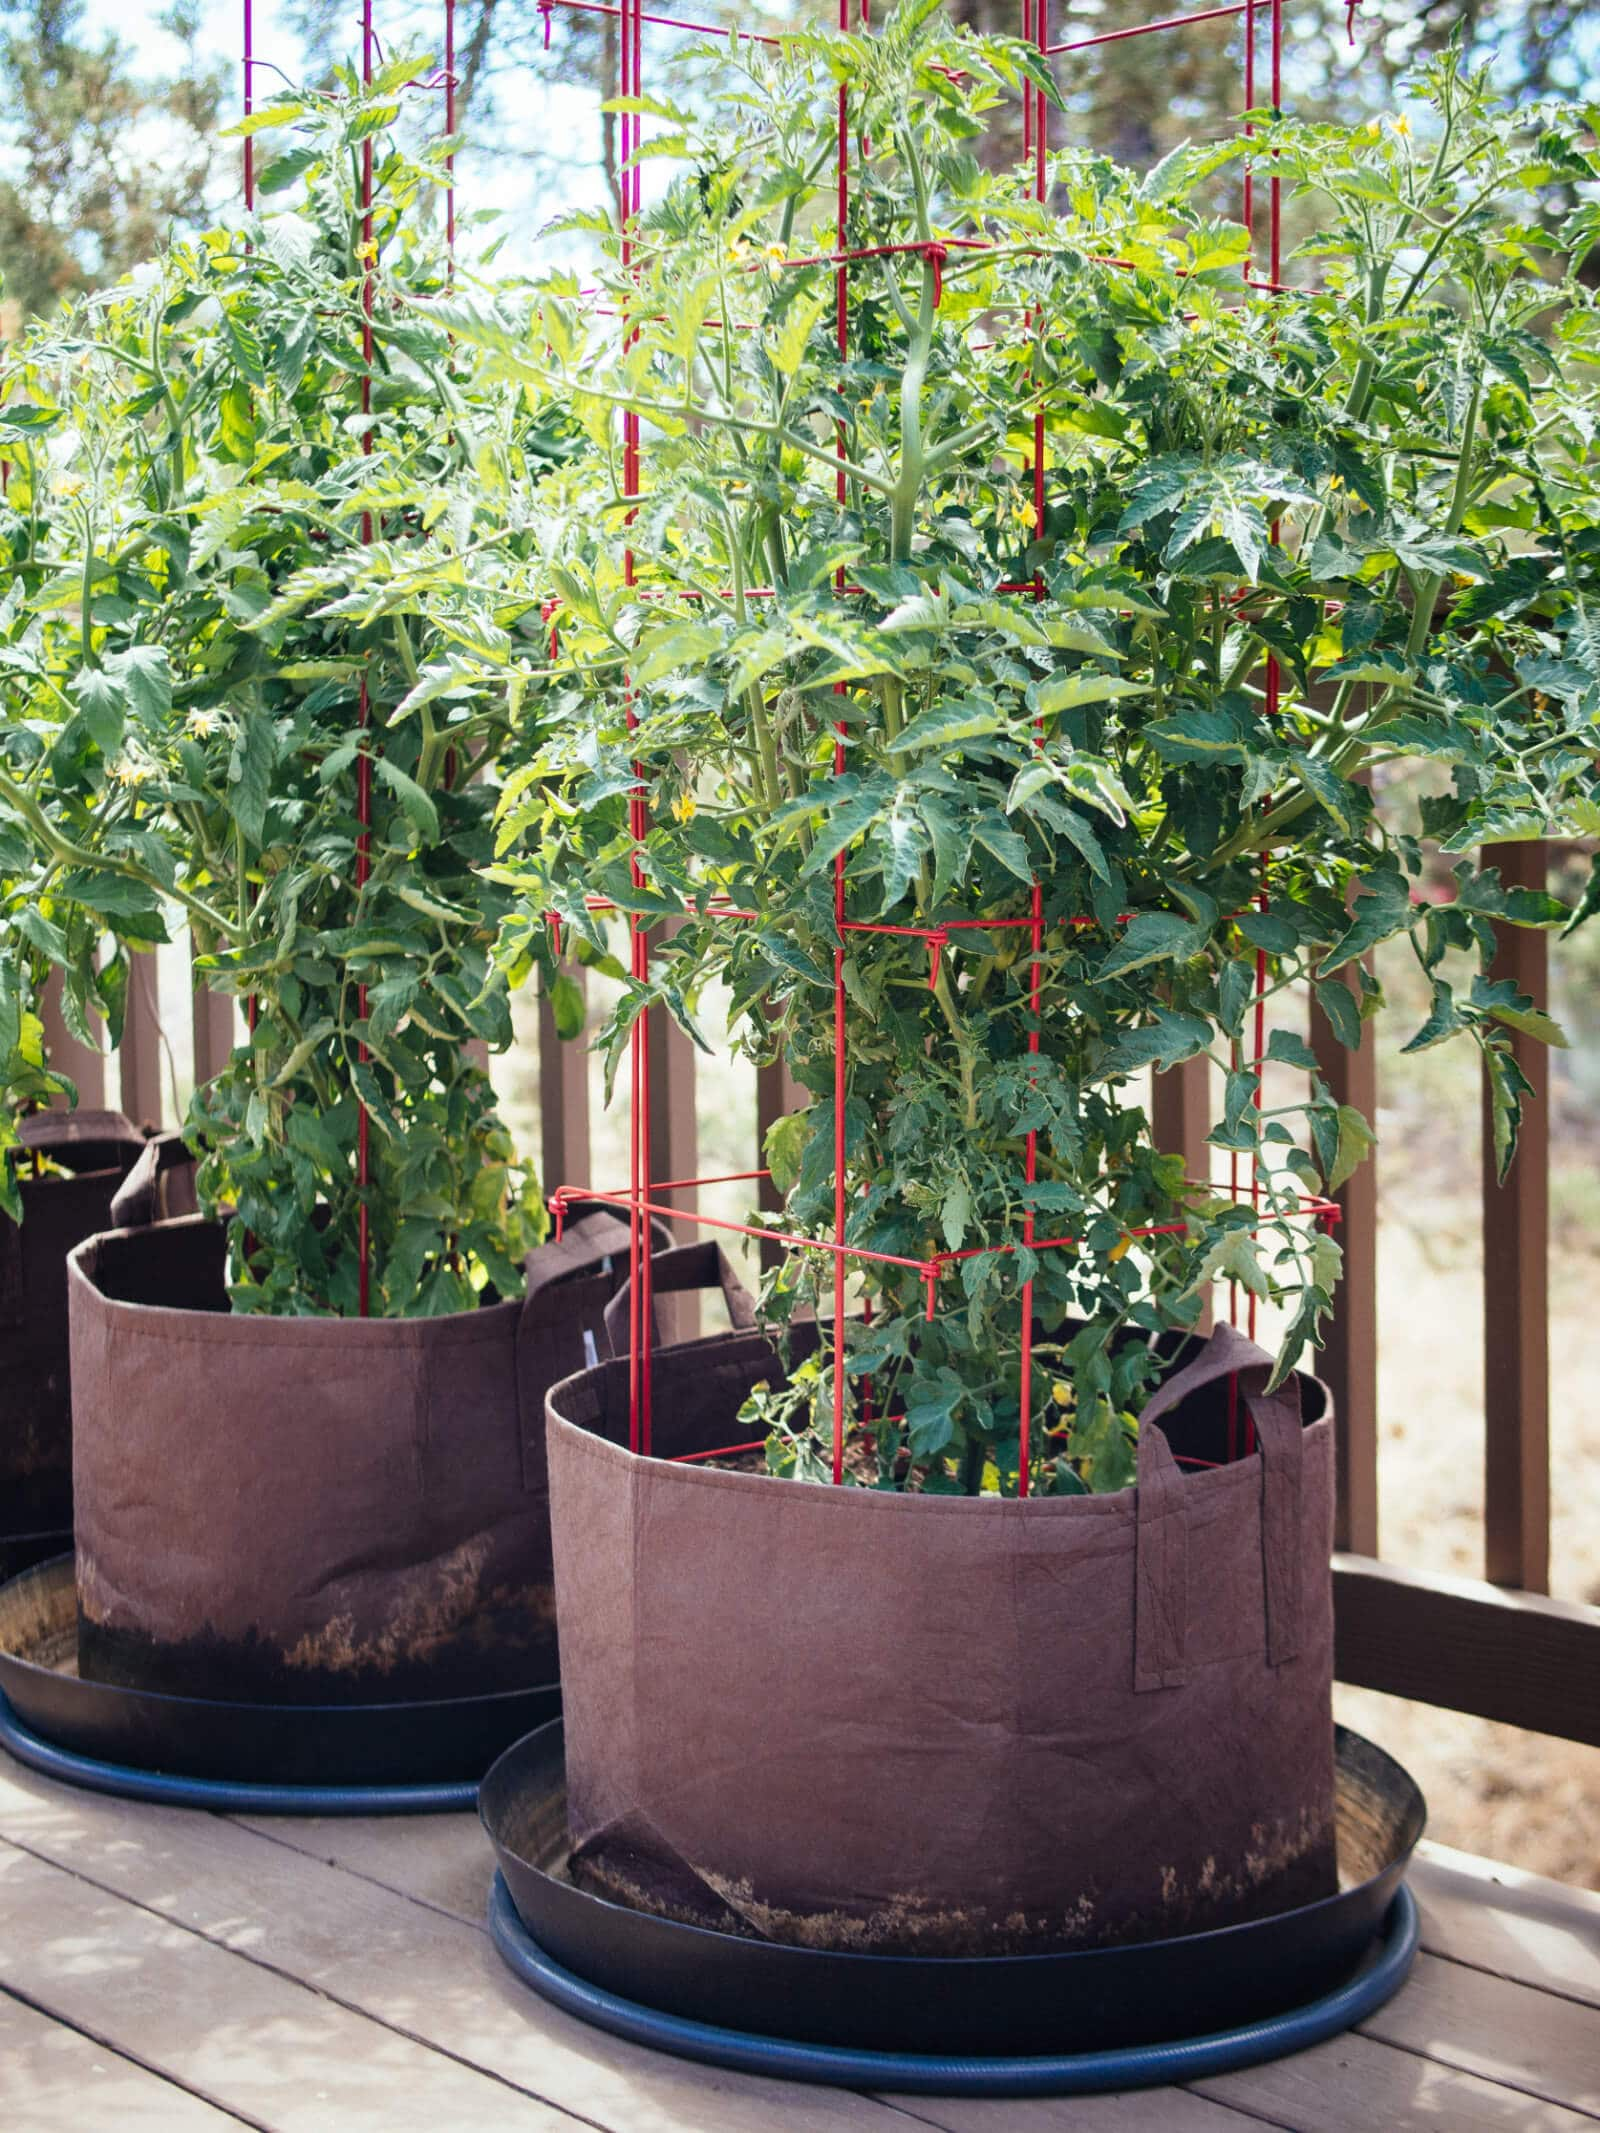 Grow tomato plants in 15-gallon containers or larger